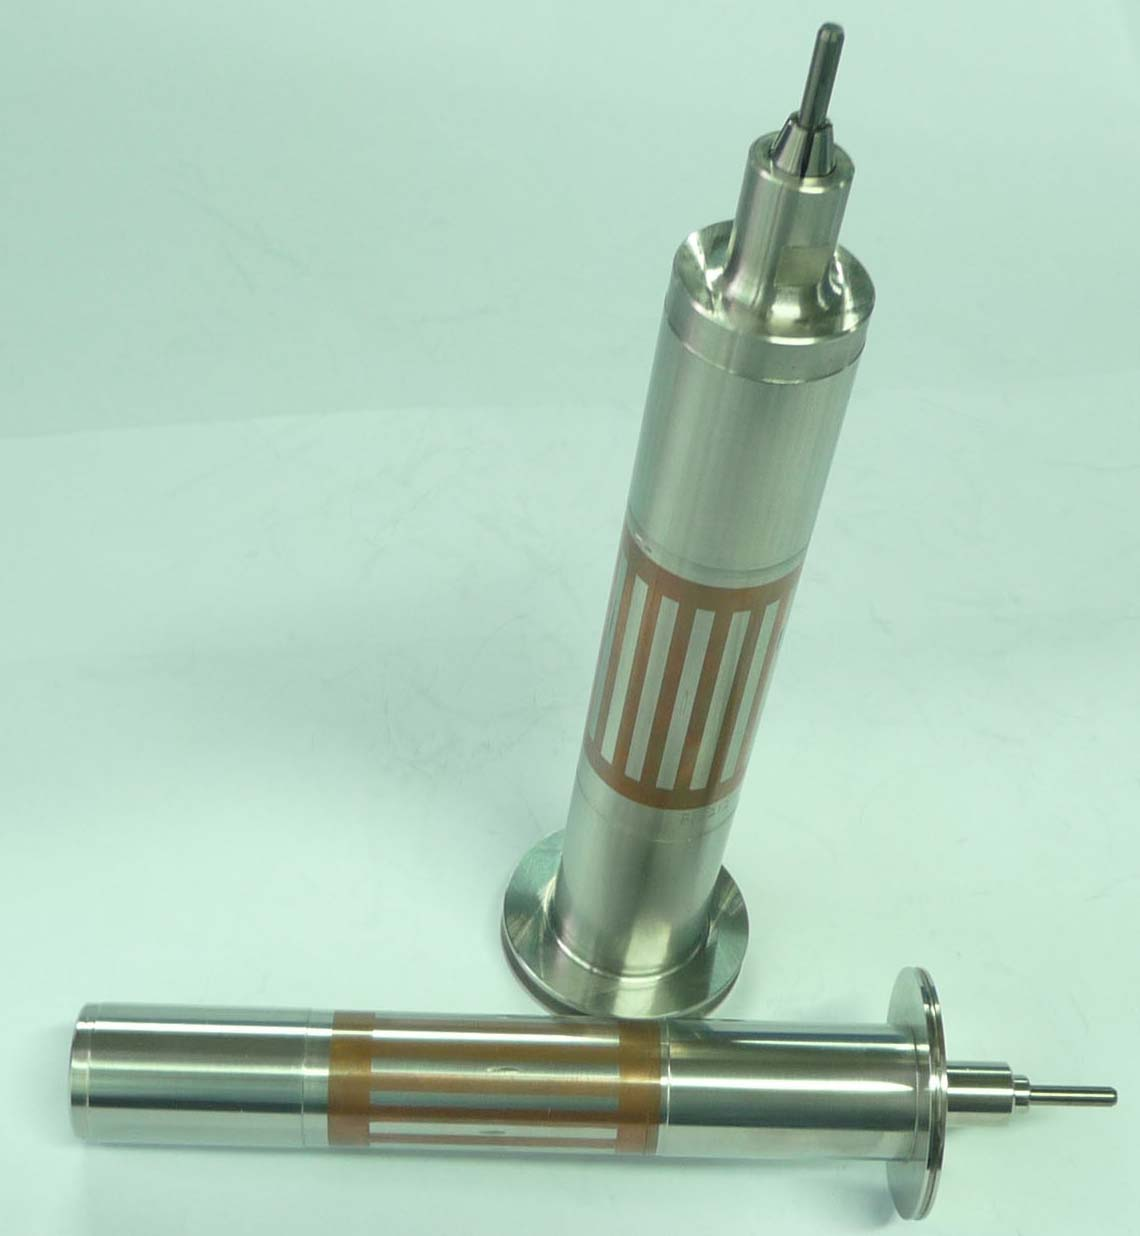 PCB spindle shaft